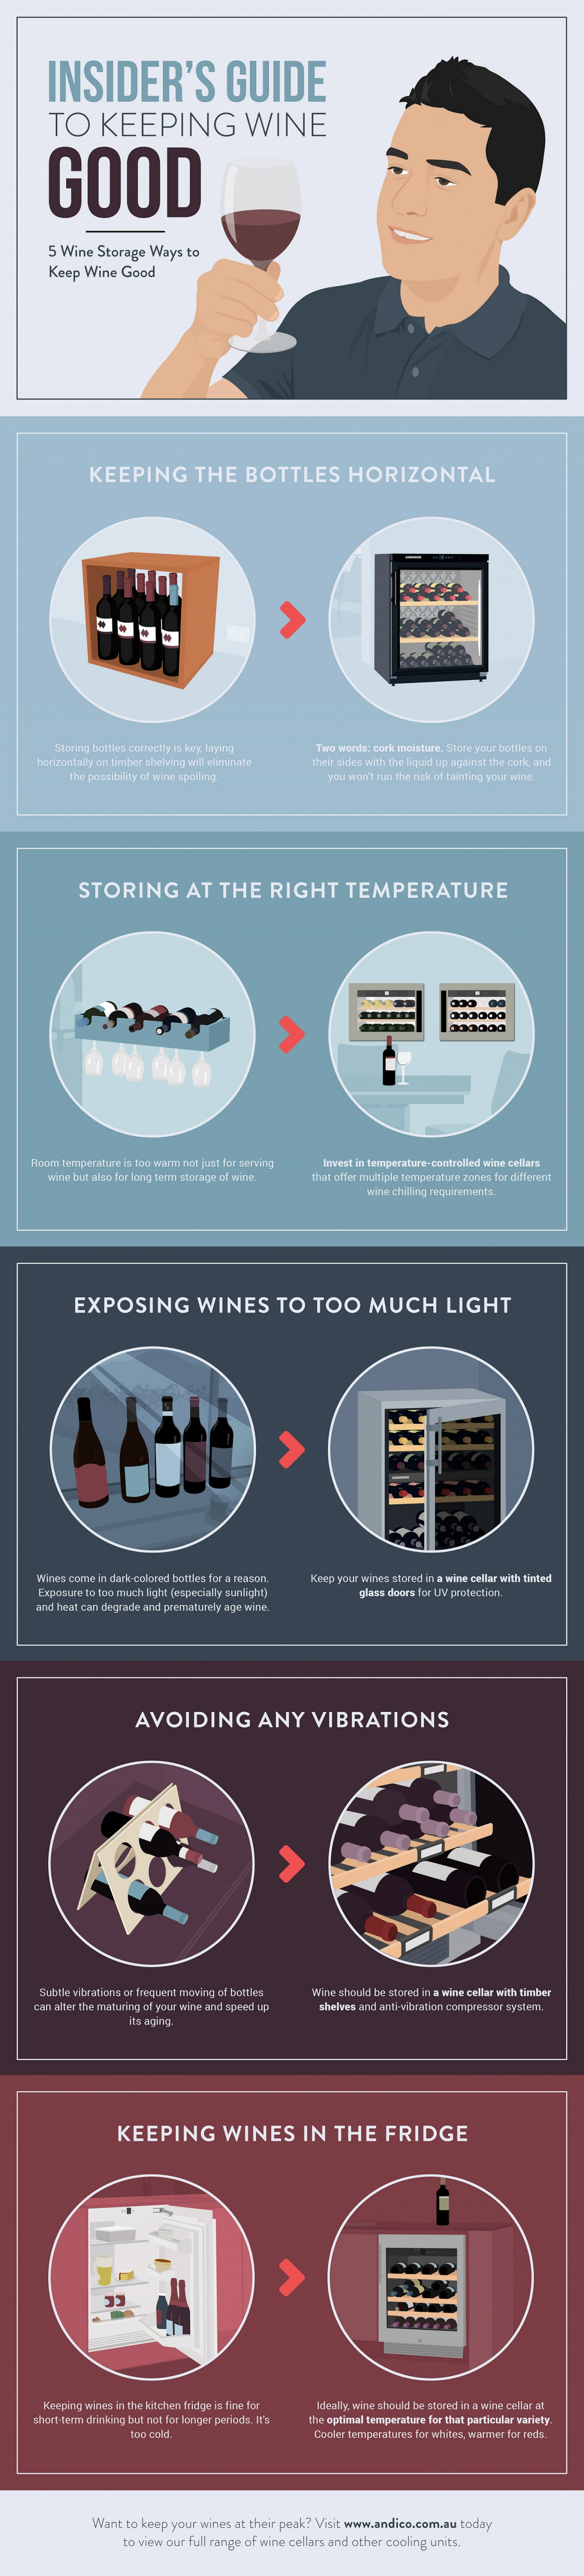 Insider's Guide to Keeping Wine Good Infographic